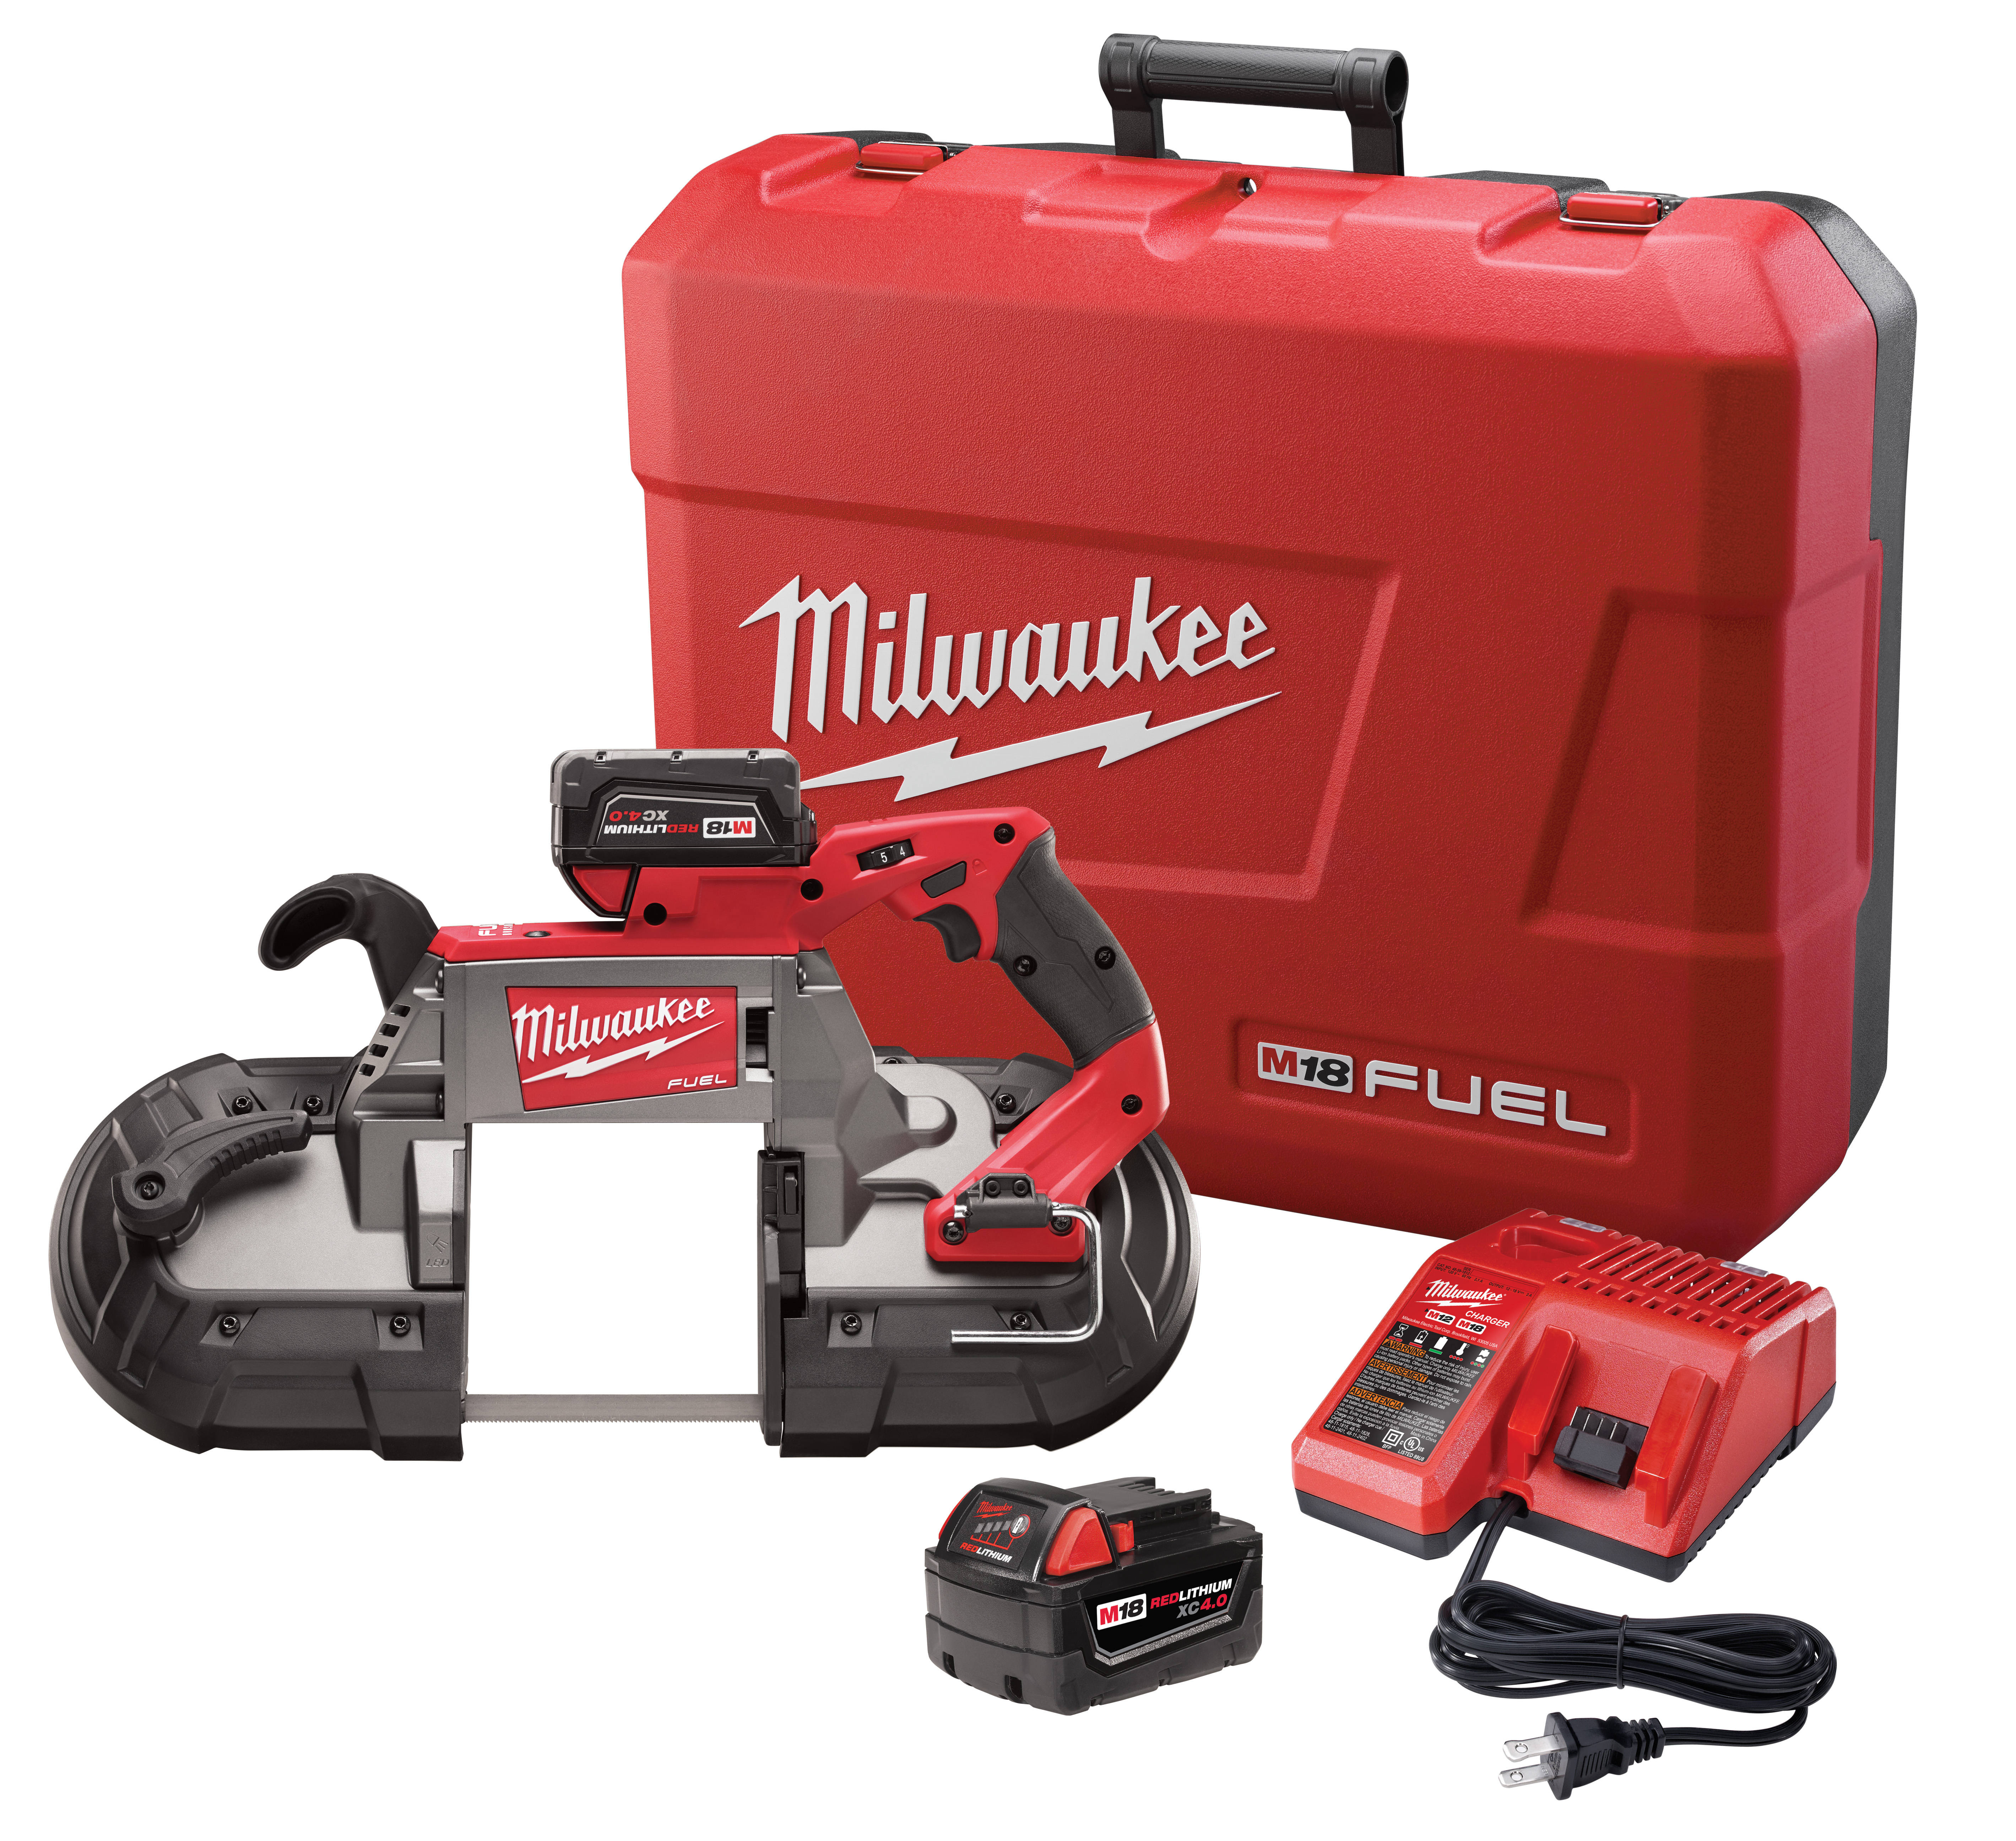 Milwaukee® M18™ FUEL™ 2729-22 Cordless Band Saw Kit, 5 in Cutting, 44.875 in L x 0.5 in W x 0.02 in THK Blade, 18 VDC, 5 Ah Lithium-Ion Battery